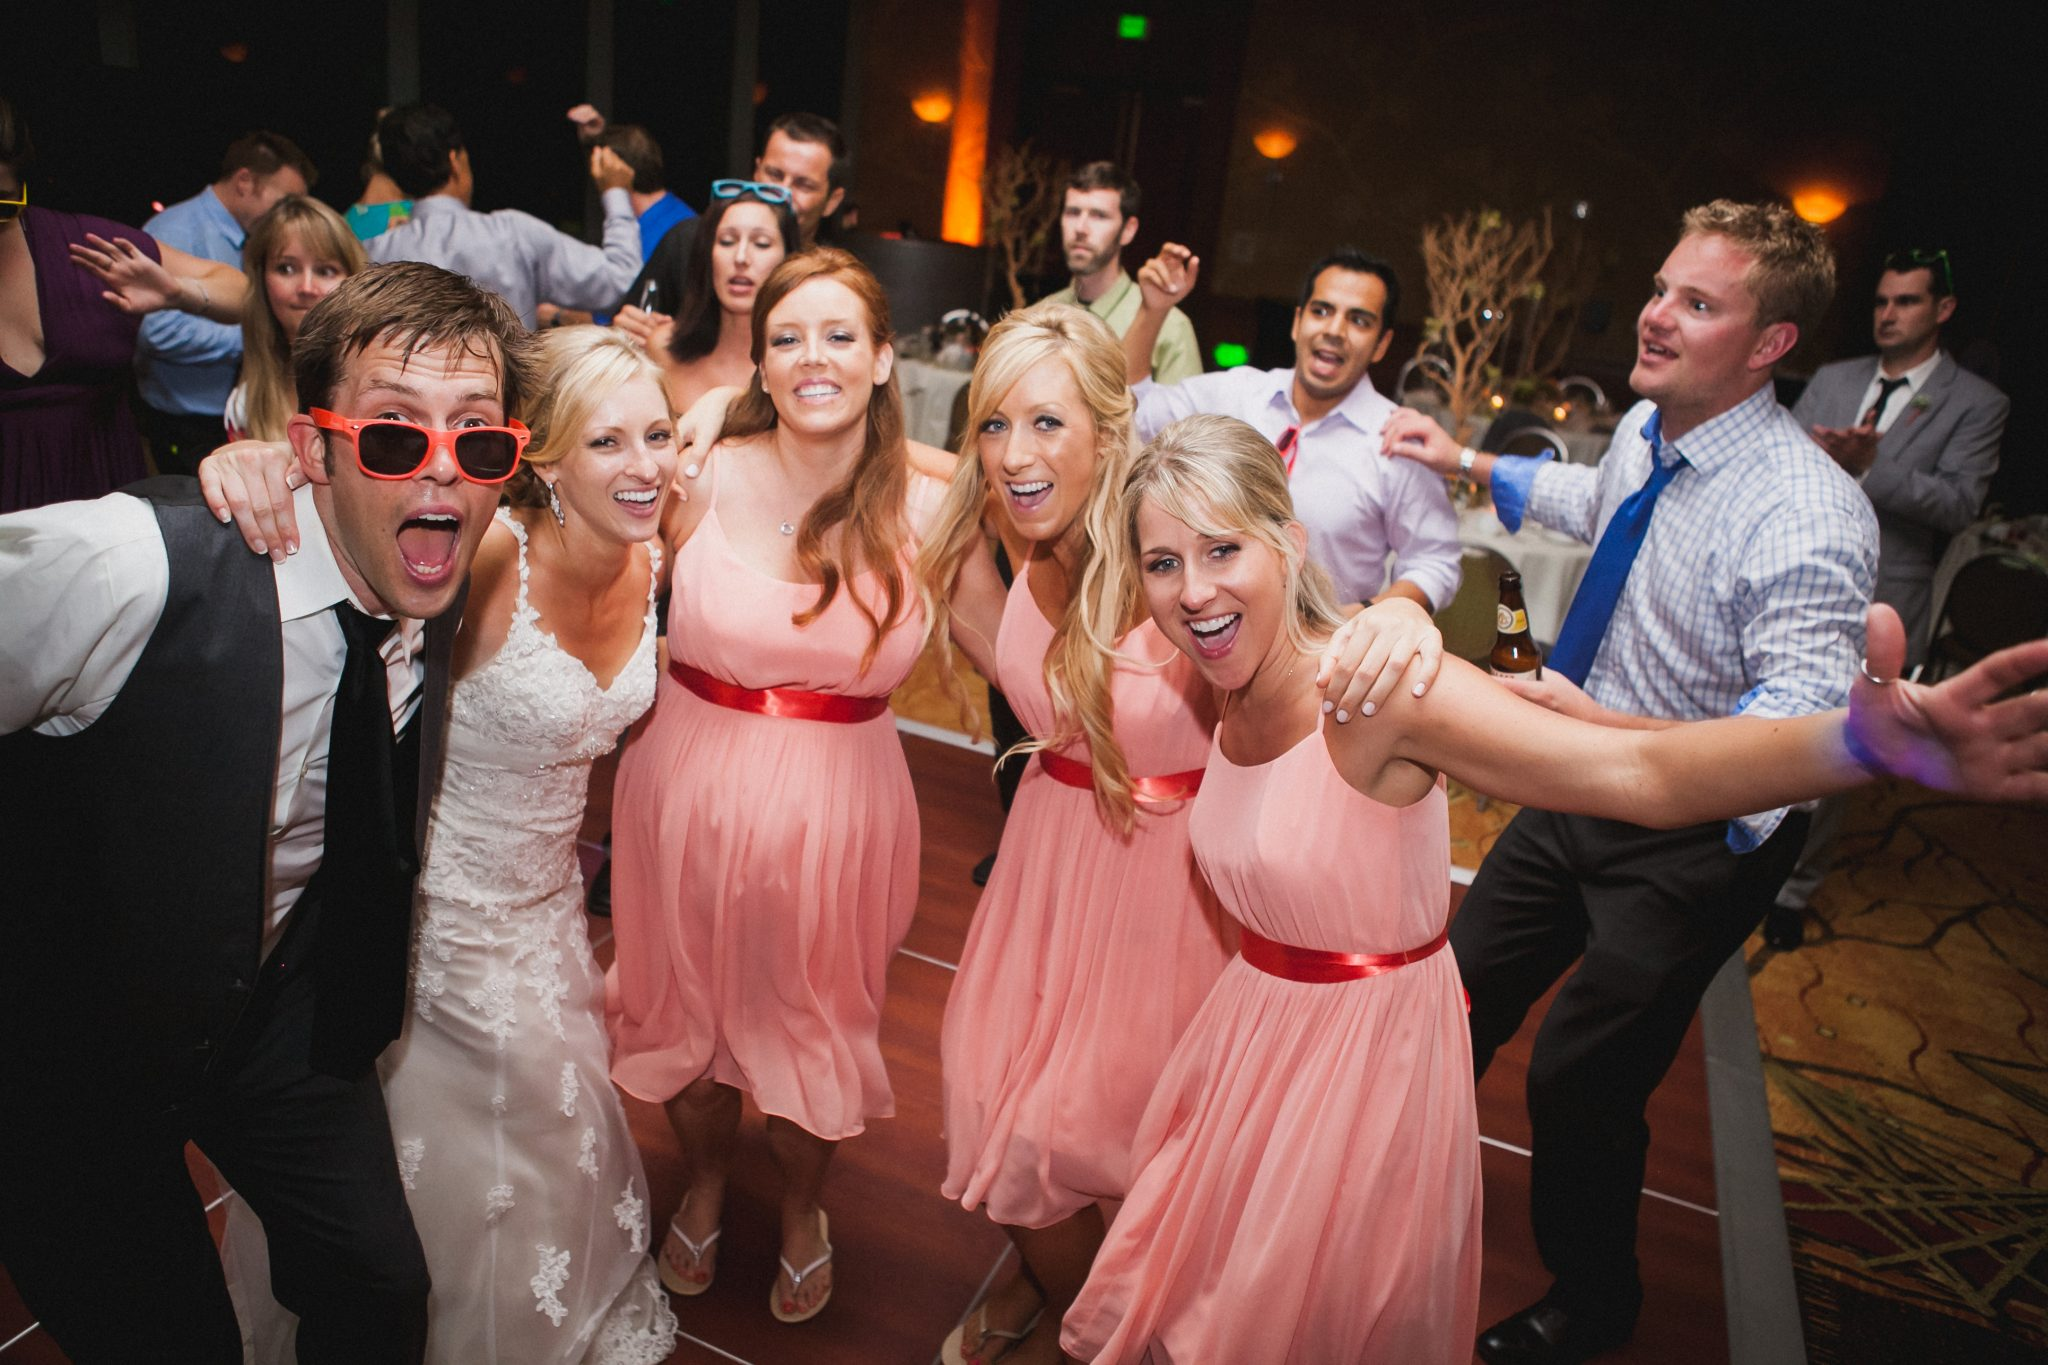 Wedding party dances during the reception